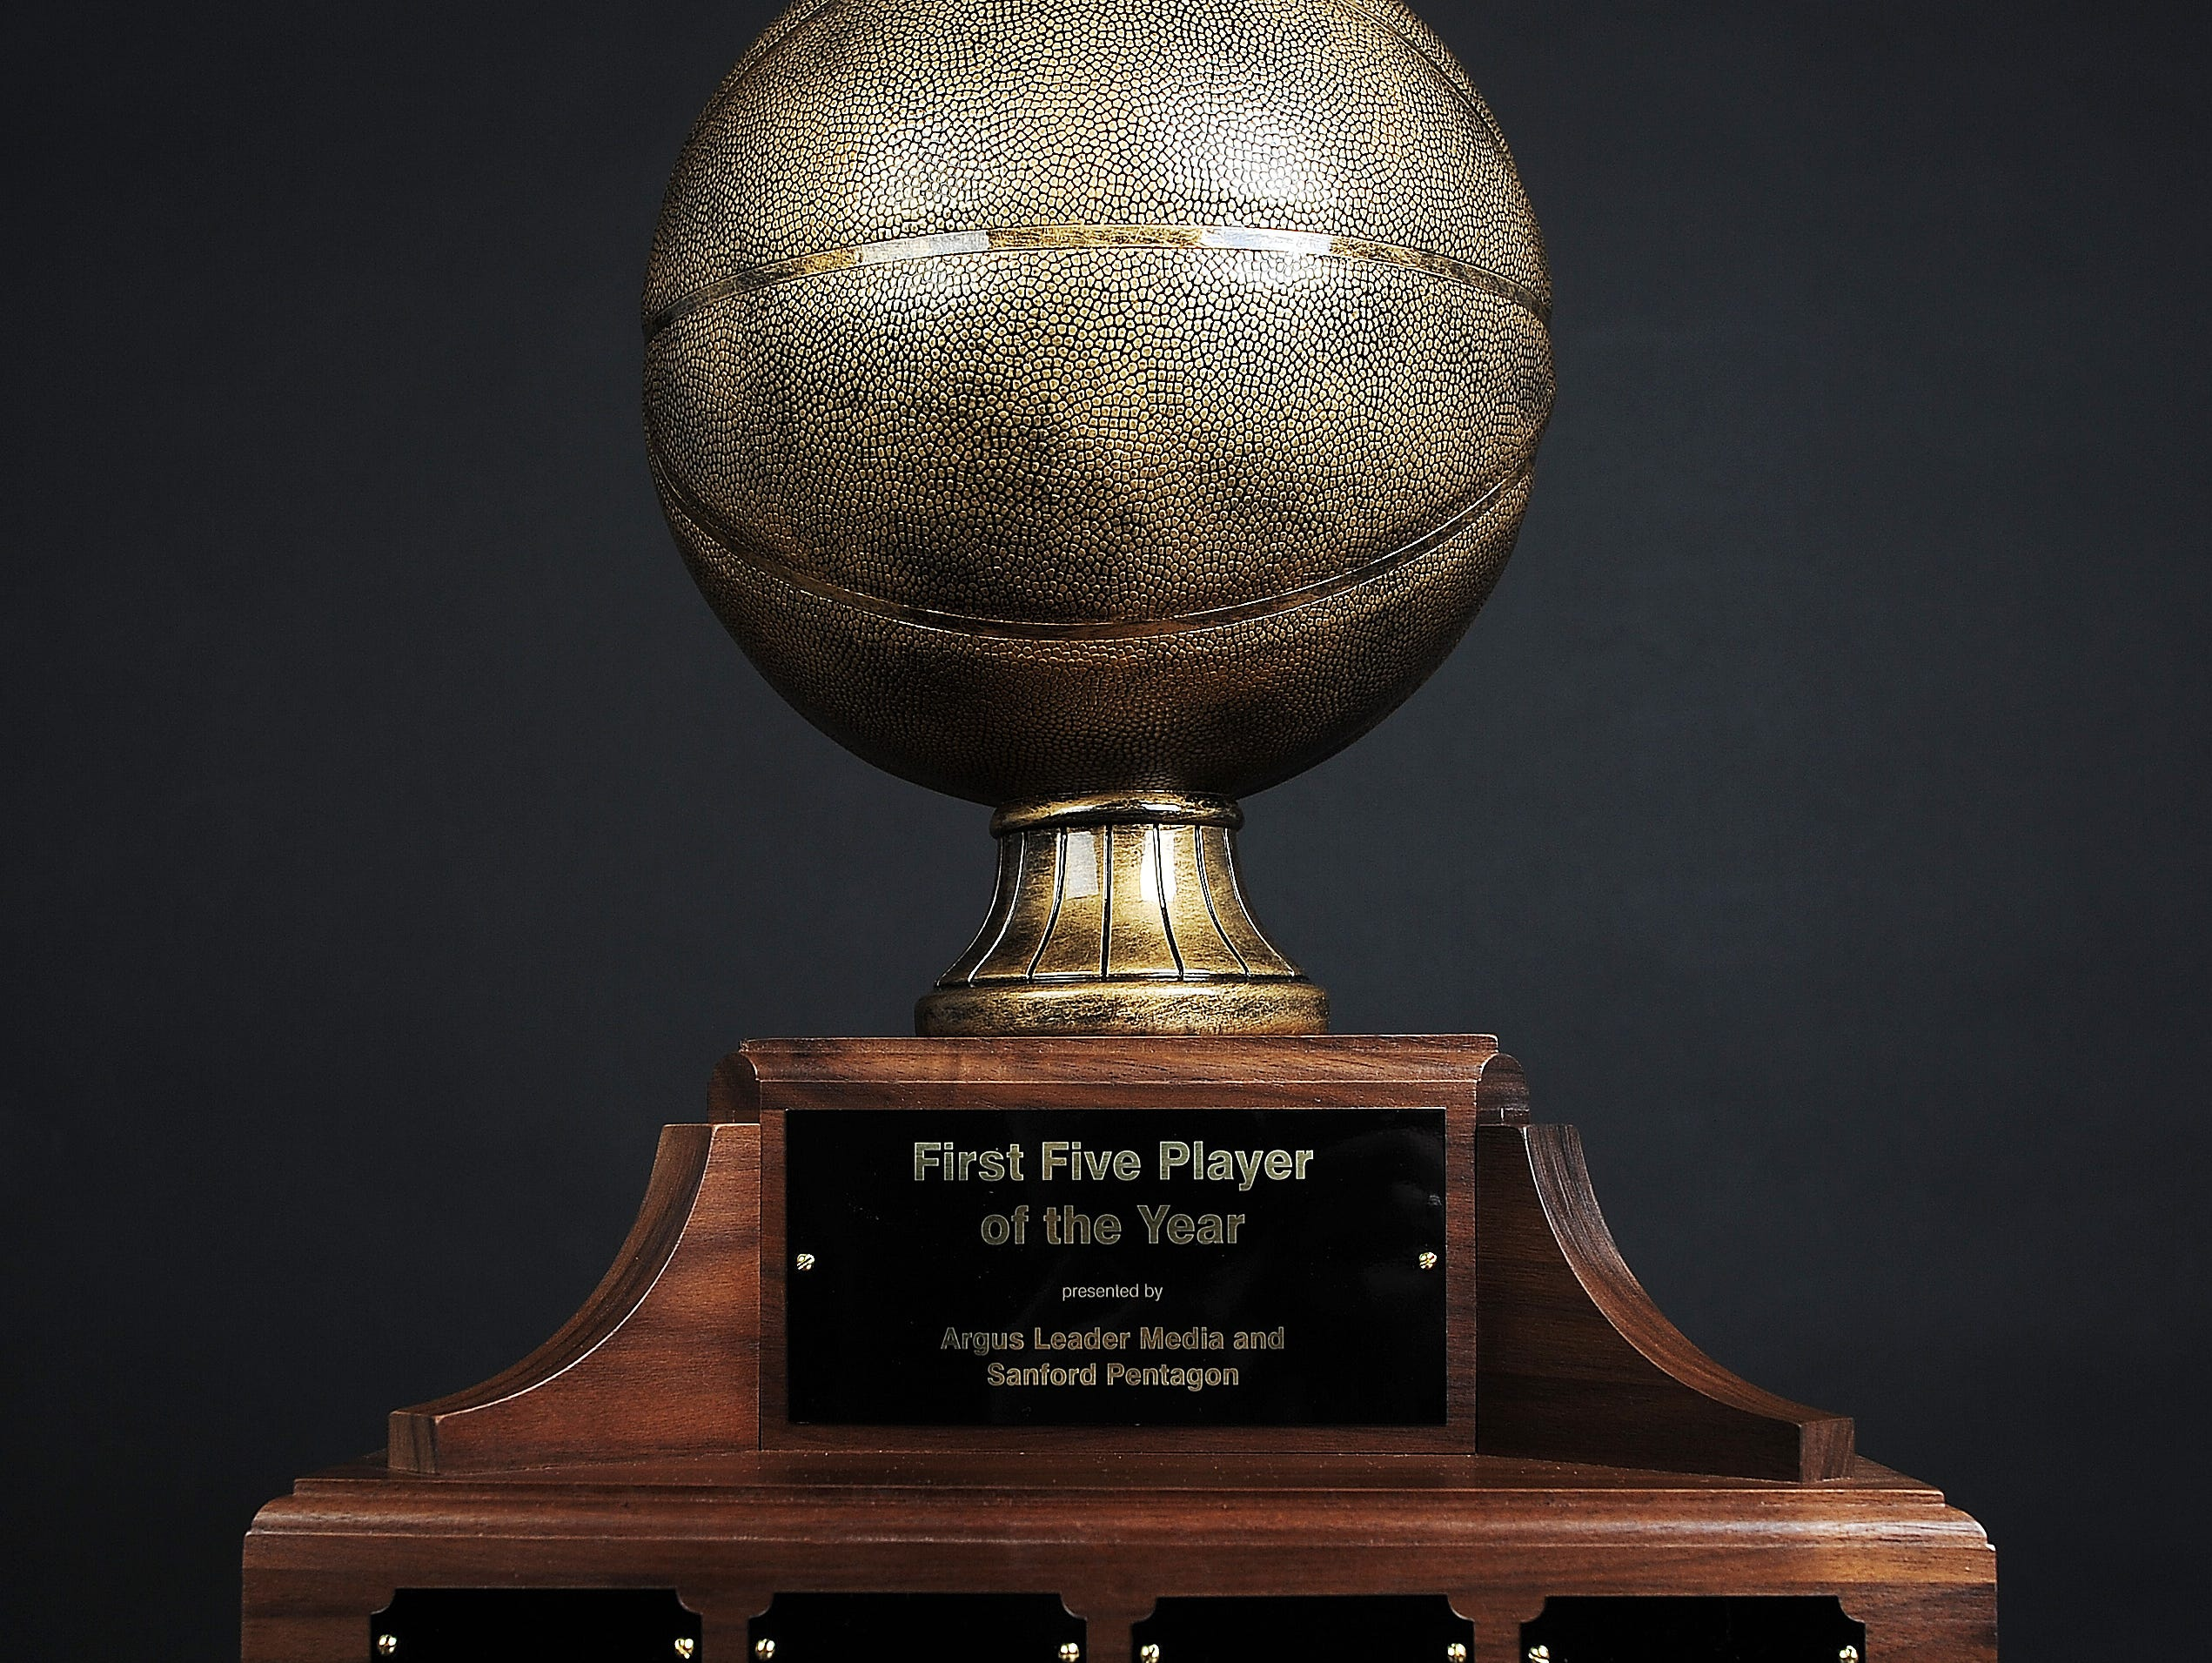 The Argus Leader Media & Sanford Pentagon First Five Player of the Year trophy.